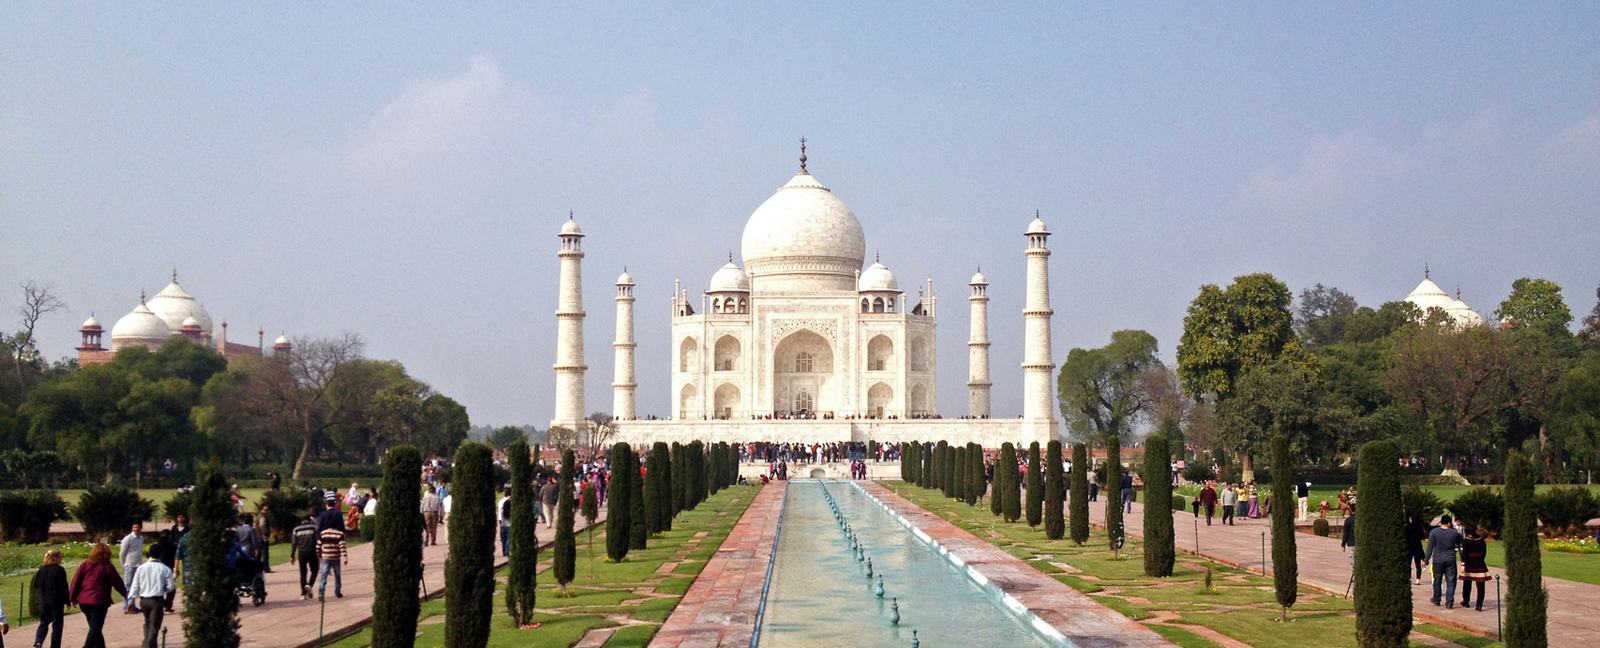 Discover India Golden Triangle - octombrie 2020